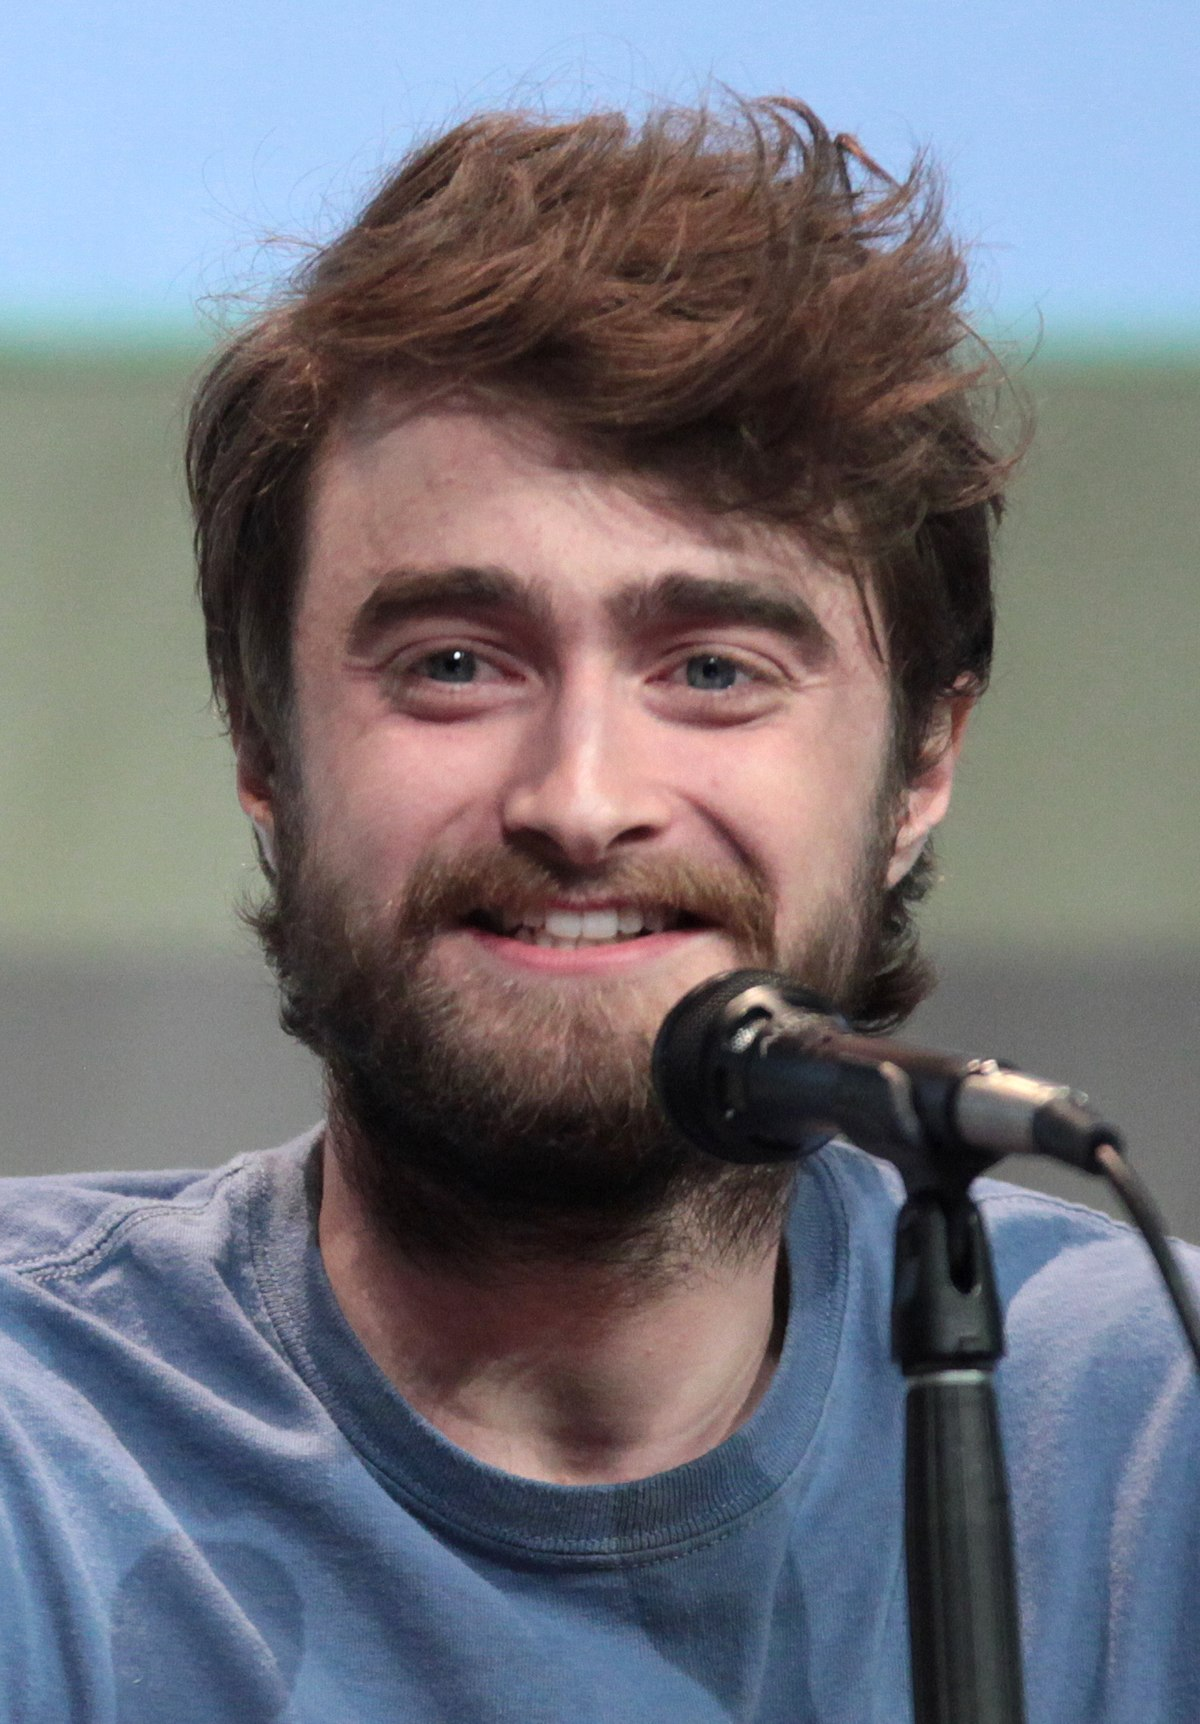 Harry Potter Cast In Real Life 2020